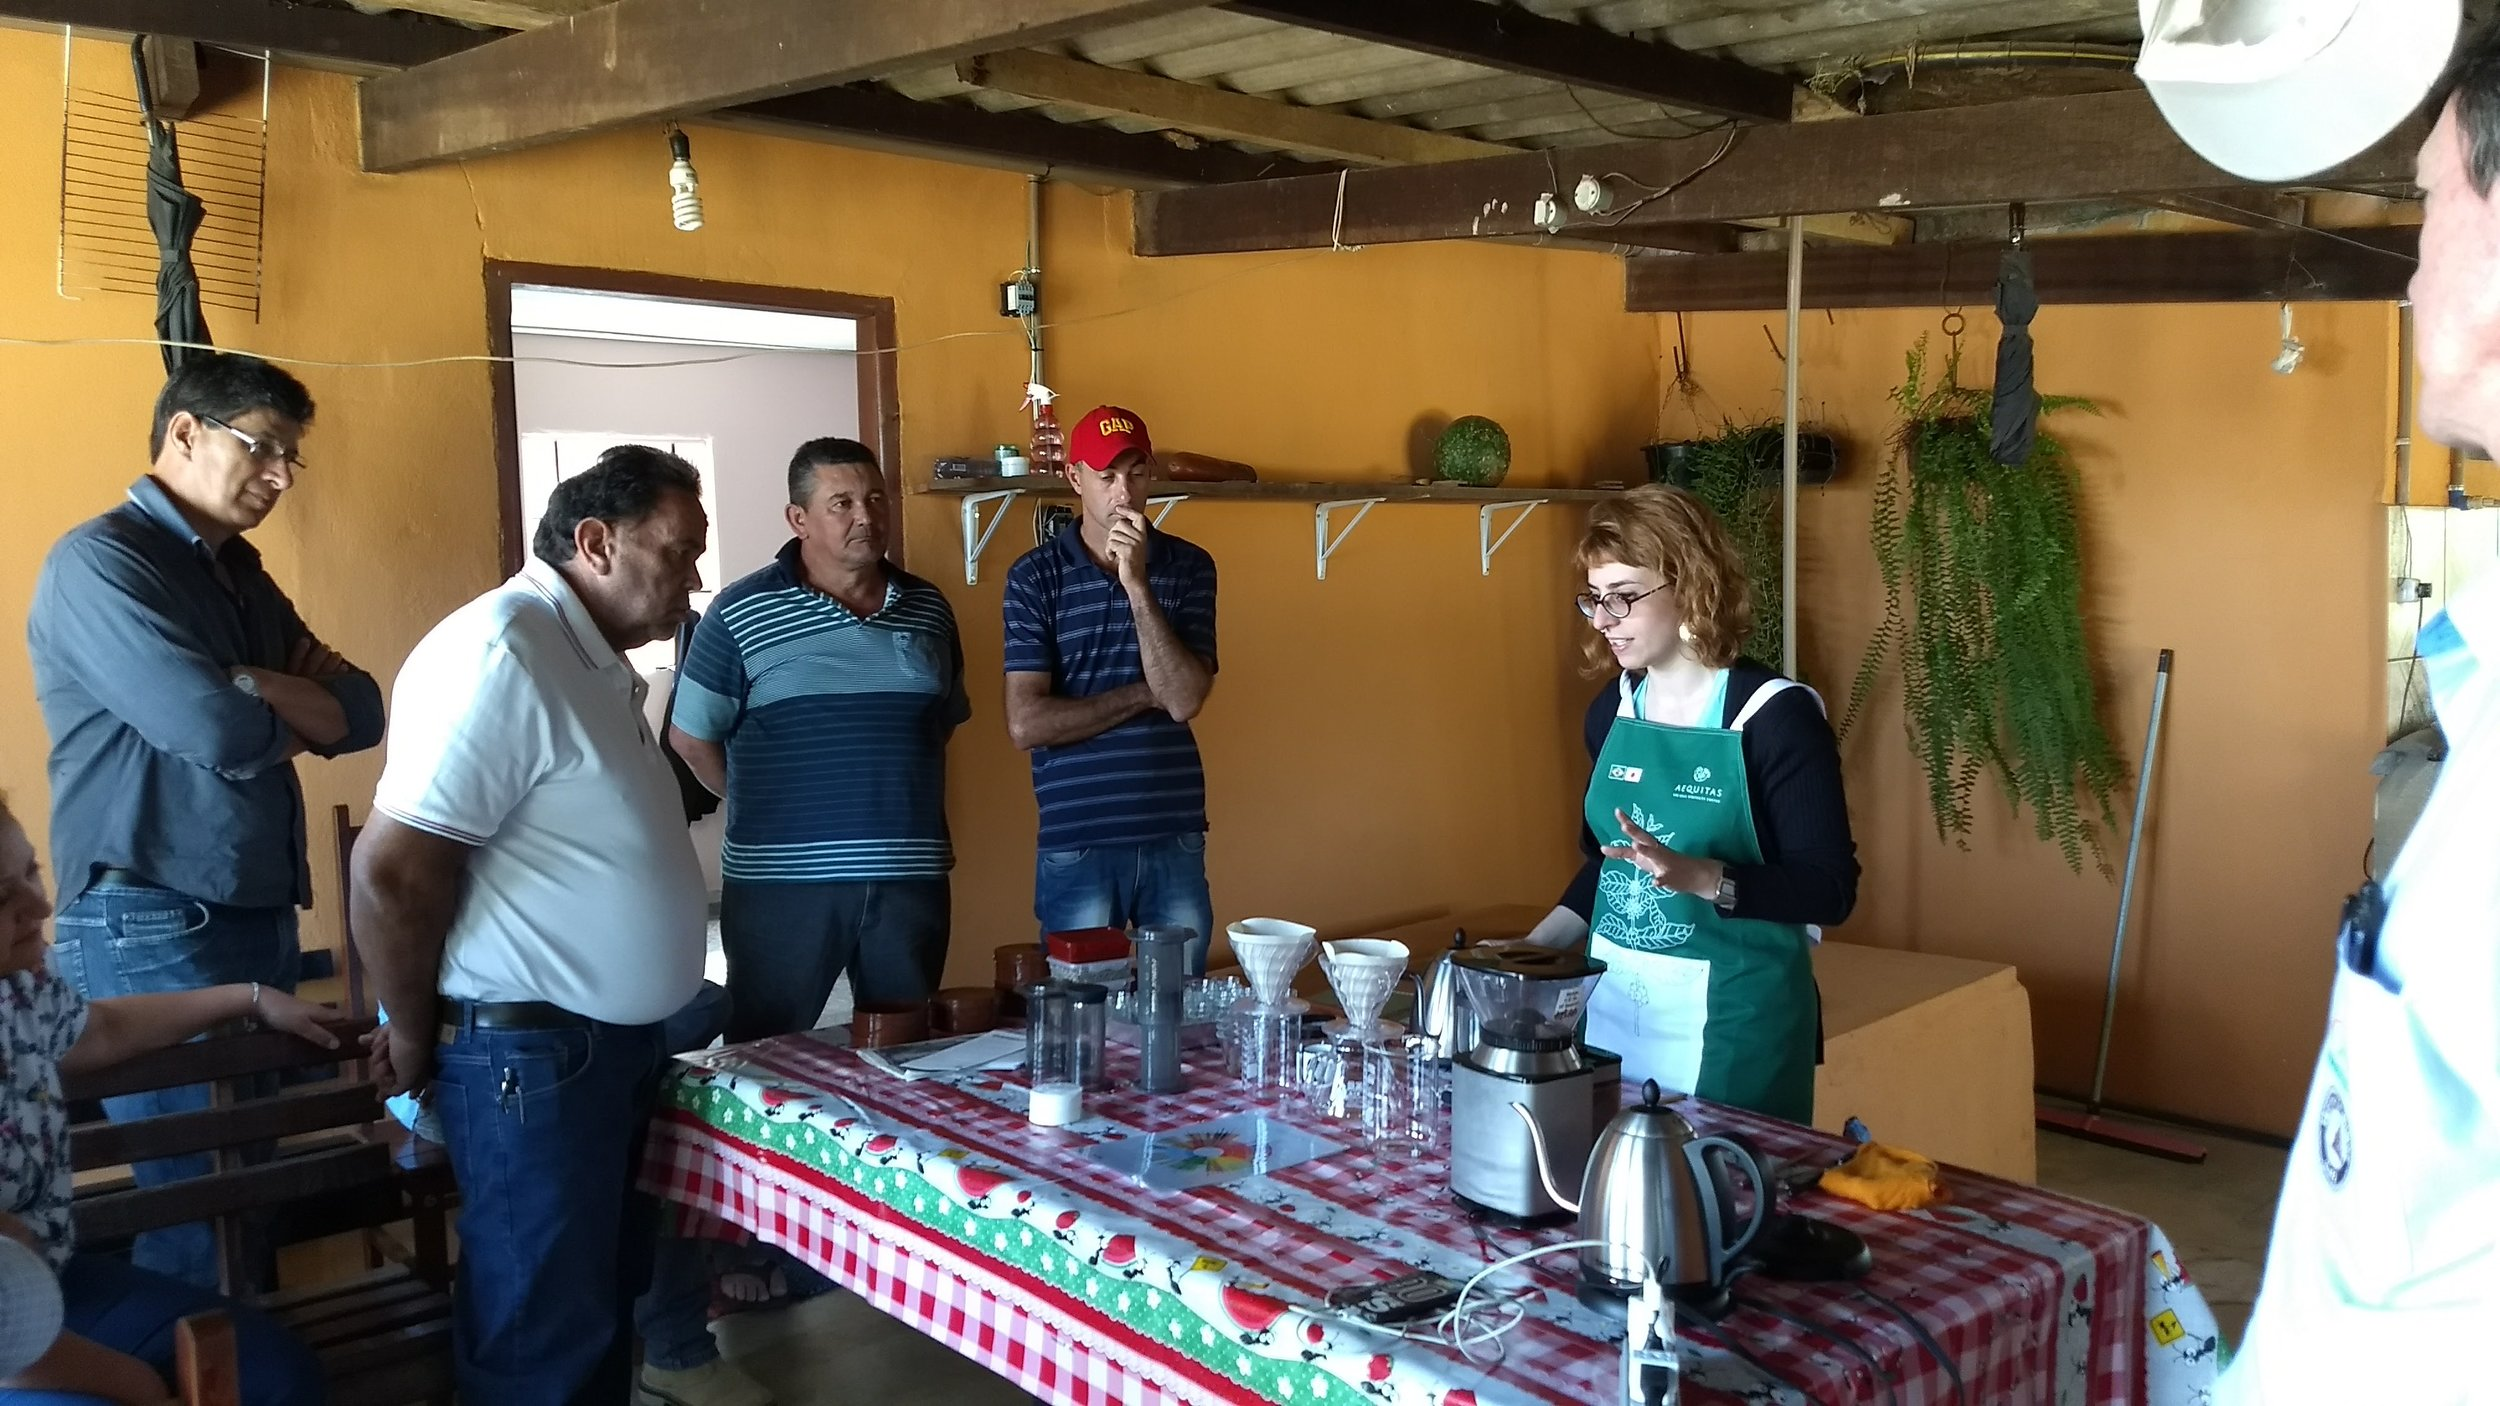 Brewing workshop at Mr. Rafael's (second on the right) in Agrovila.